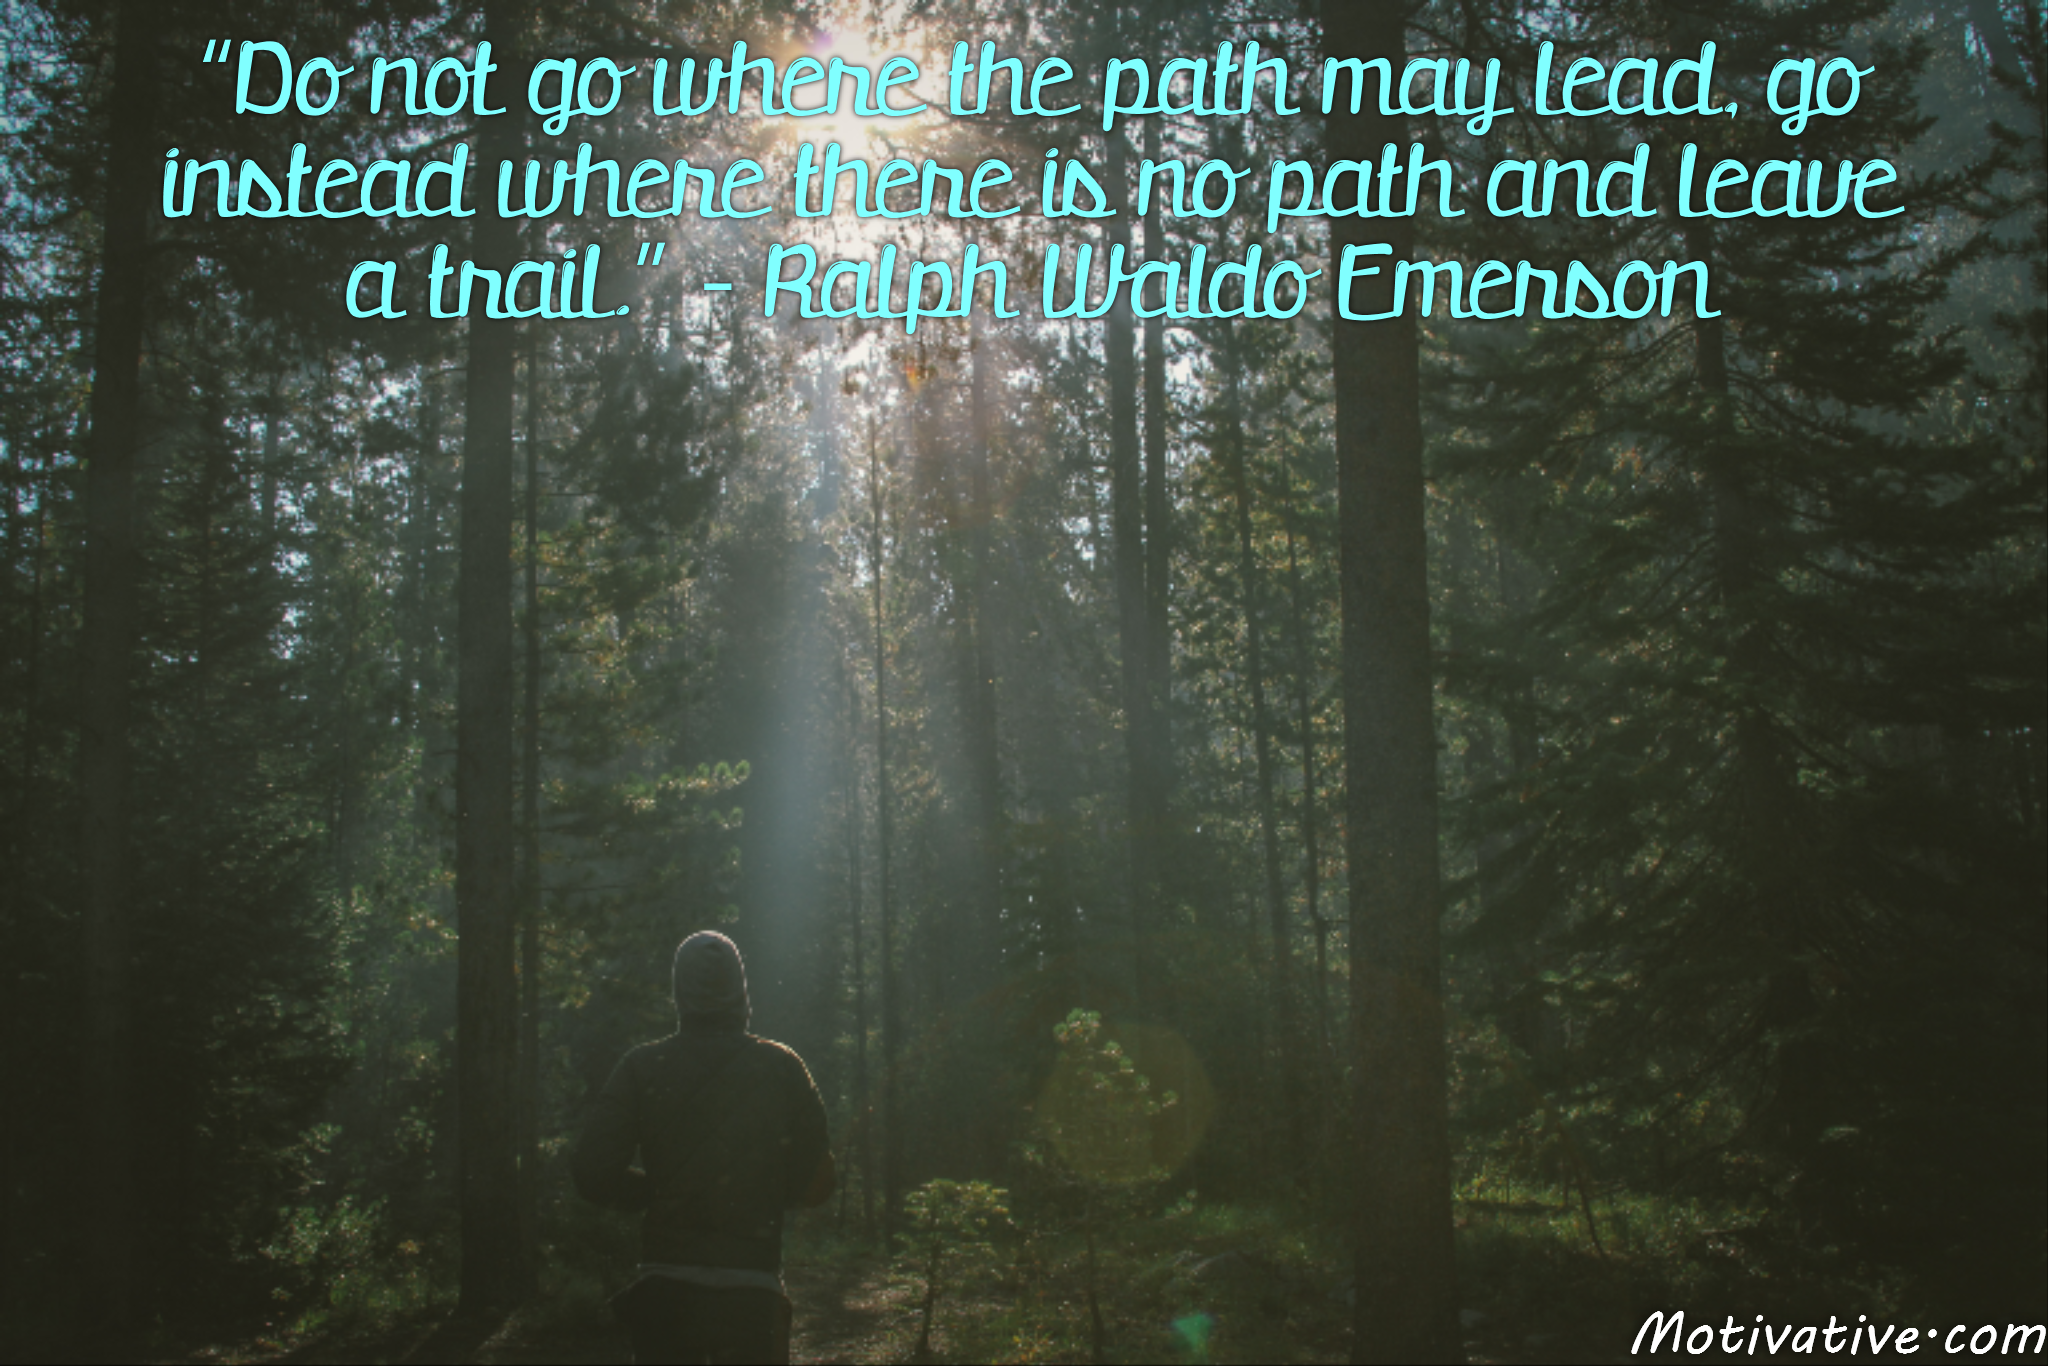 Do not go where the path may lead, go instead where there is no path and leave a trail. – Ralph Waldo Emerson